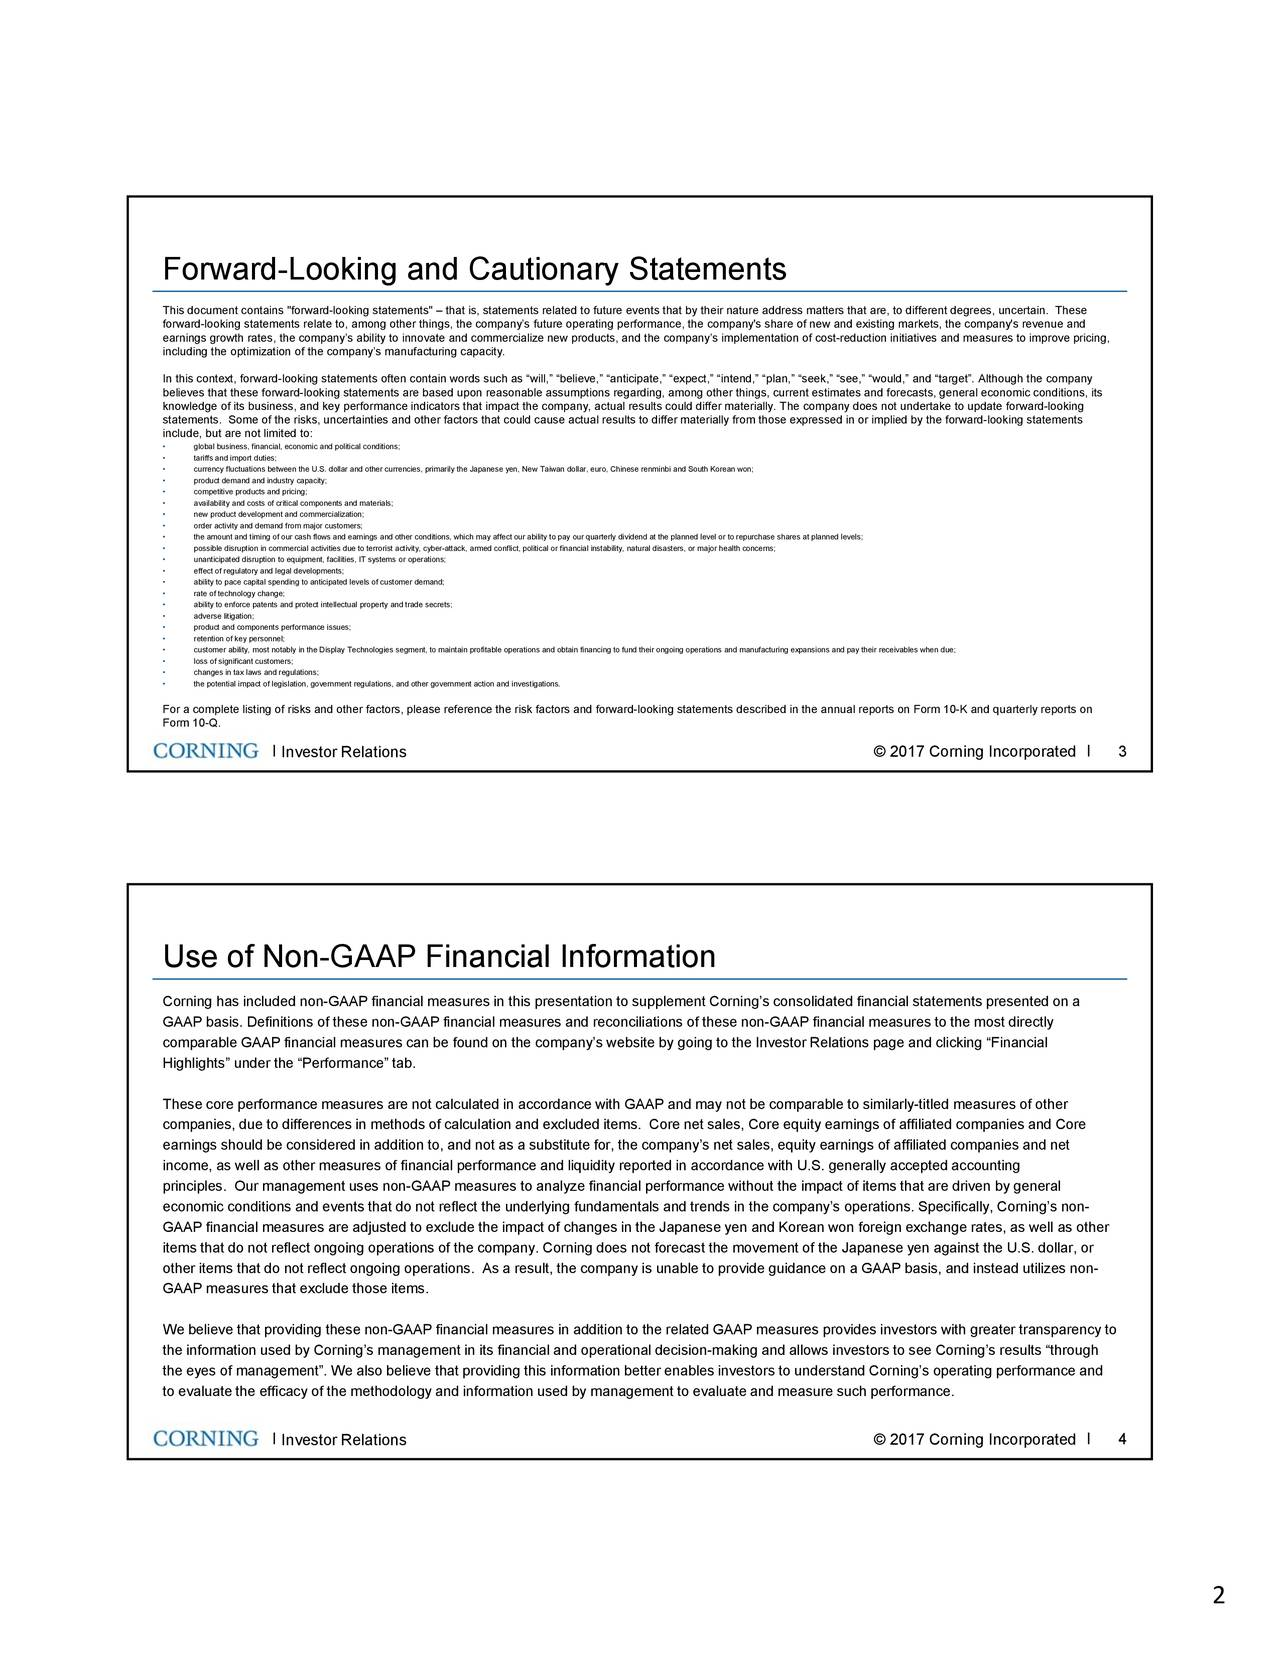 """This document contains """"forward-looking statements"""" – that is, statements related to future events that by their nature address matters that are, to different degrees, uncertain. These forward-looking statements relate to, among other things, the company's future operating performance, the company's share of ne w and existing markets, the company's revenue and earnings growth rates, the company's ability to innovate and commercialize new products, and the company's implementation of cost-reduction initiatives and measures to improve pricing, including the optimization of the company's manufacturing capacity. In this context, forward-looking statements often contain words such as """"will,"""" """"believe,"""" """"anticipate,"""" """"expect,"""" """"intend,"""" """"plan,"""" """"seek,"""" """"see,"""" """"would,"""" and """"target"""". Although the company believes that these forward-looking statements are based upon reasonable assumptions regarding, among other things, current est imates and forecasts, general economic conditions, its knowledge of its business, and key performance indicators that impact the company, actual results could differ materially. The company does not undertake to update forward-looking statements. Some of the risks, uncertainties and other factors that could cause actual results to differ materially from those e xpressed in or implied by the forward-looking statements include, but are not limited to: • global business, financial, economic and political conditions; • tariffs and import duties; • currency fluctuations between the U.S. dollar and other currencies, primarily the Japanese yen, New Taiwan dollar, euro, Chinese renminbi and South Korean won; • product demand and industry capacity; • competitive products and pricing; • availability and costs of critical components and materials; • new product development and commercialization; • order activity and demand from major customers; • the amount and timing of our cash flows and earnings and other conditions, which may affect our ability to pay our"""